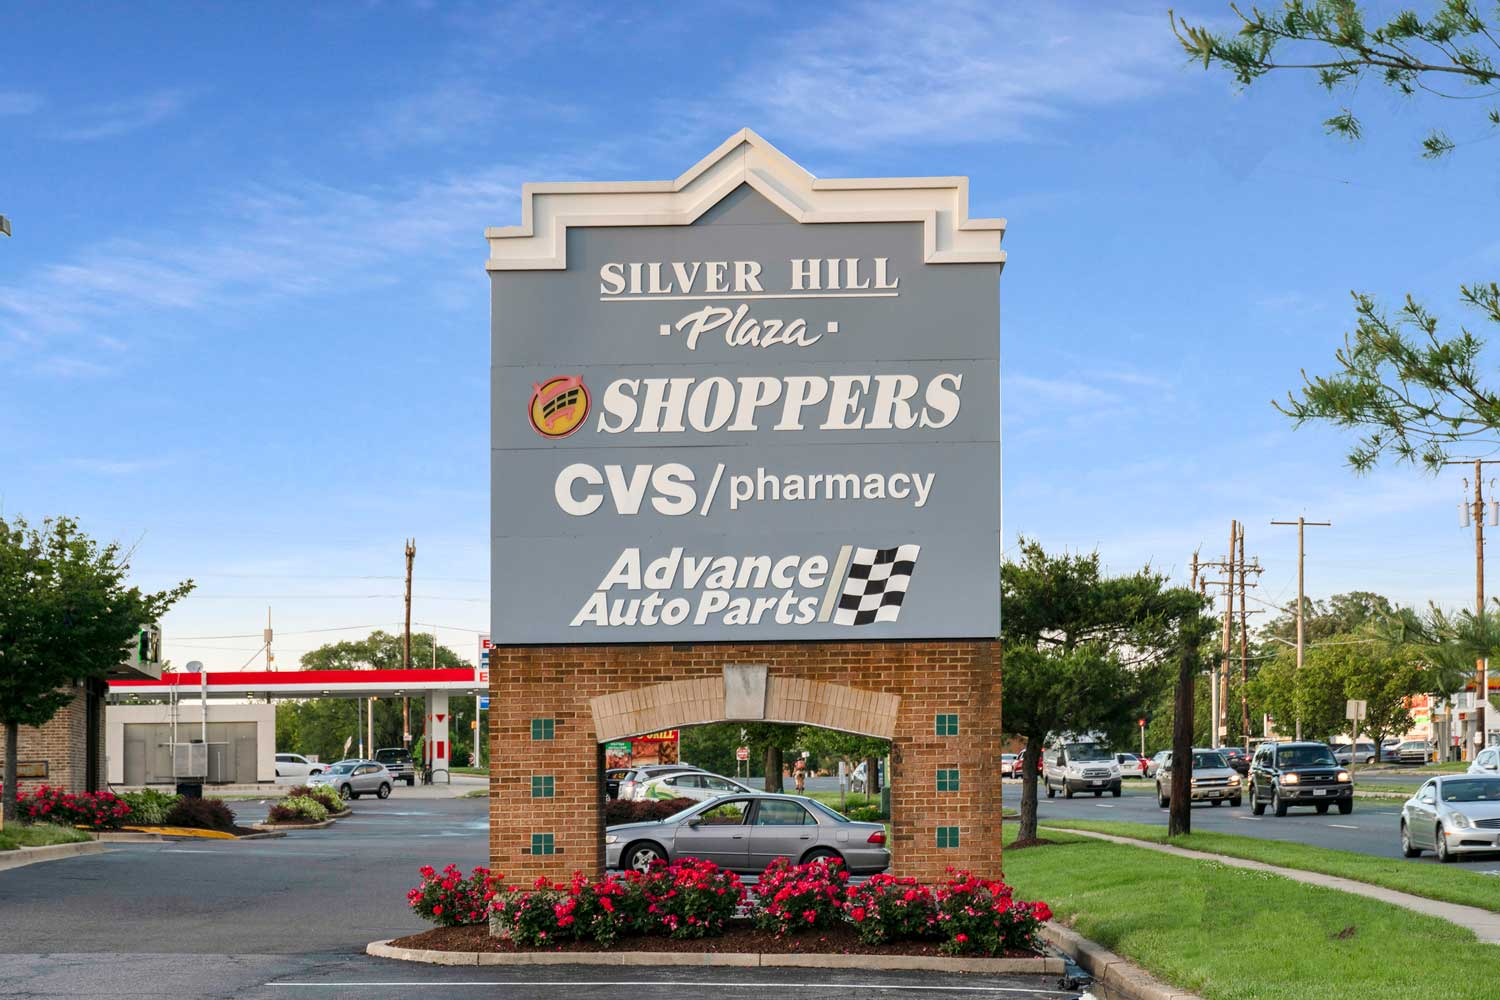 10 minutes to Silver Hill Plaza Shopping Center